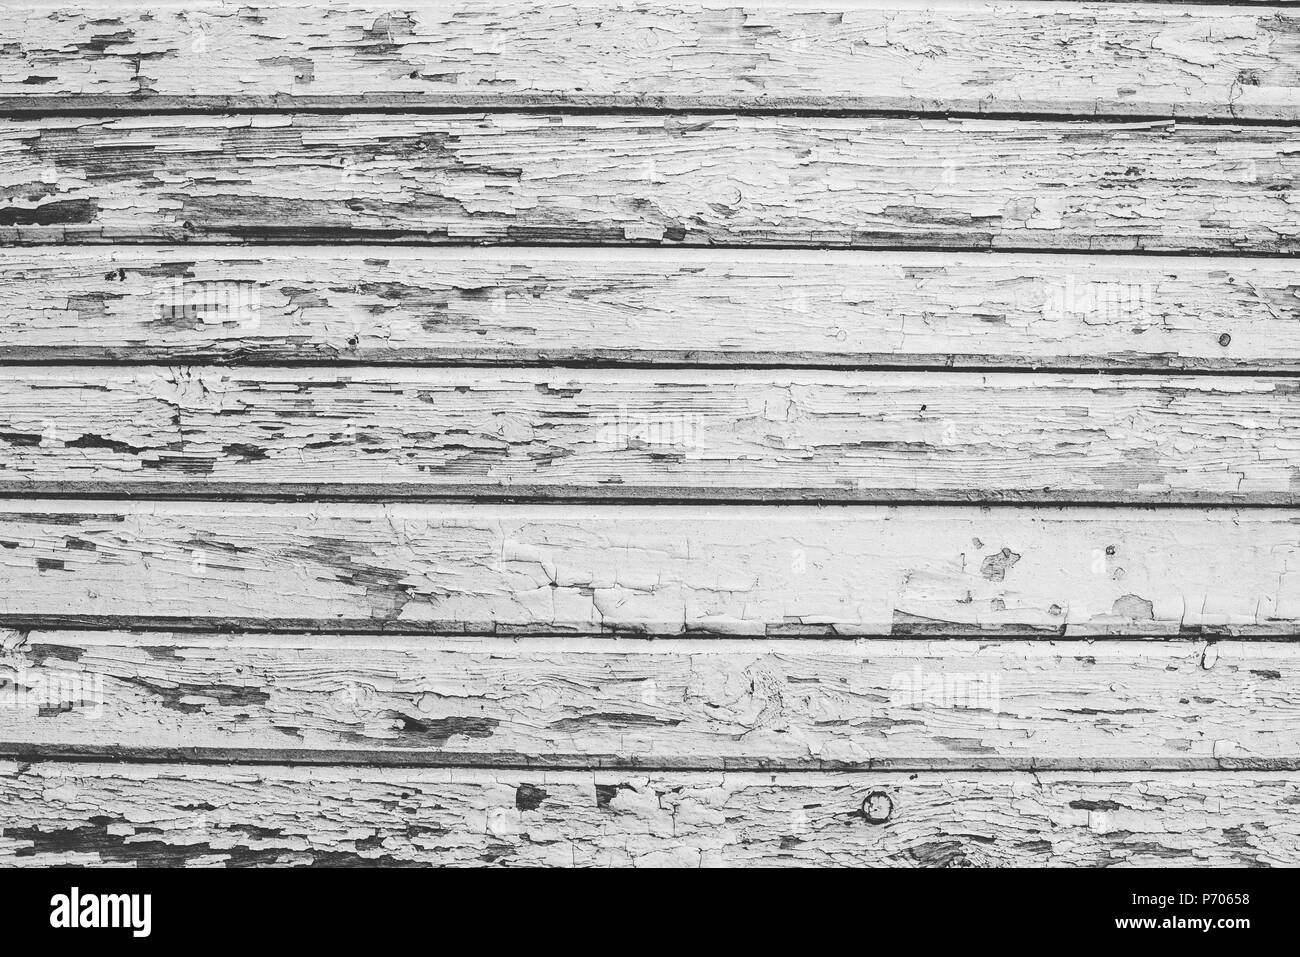 Old wooden horizontal planks texture with scratches and cracks. Wooden background for design - Stock Image